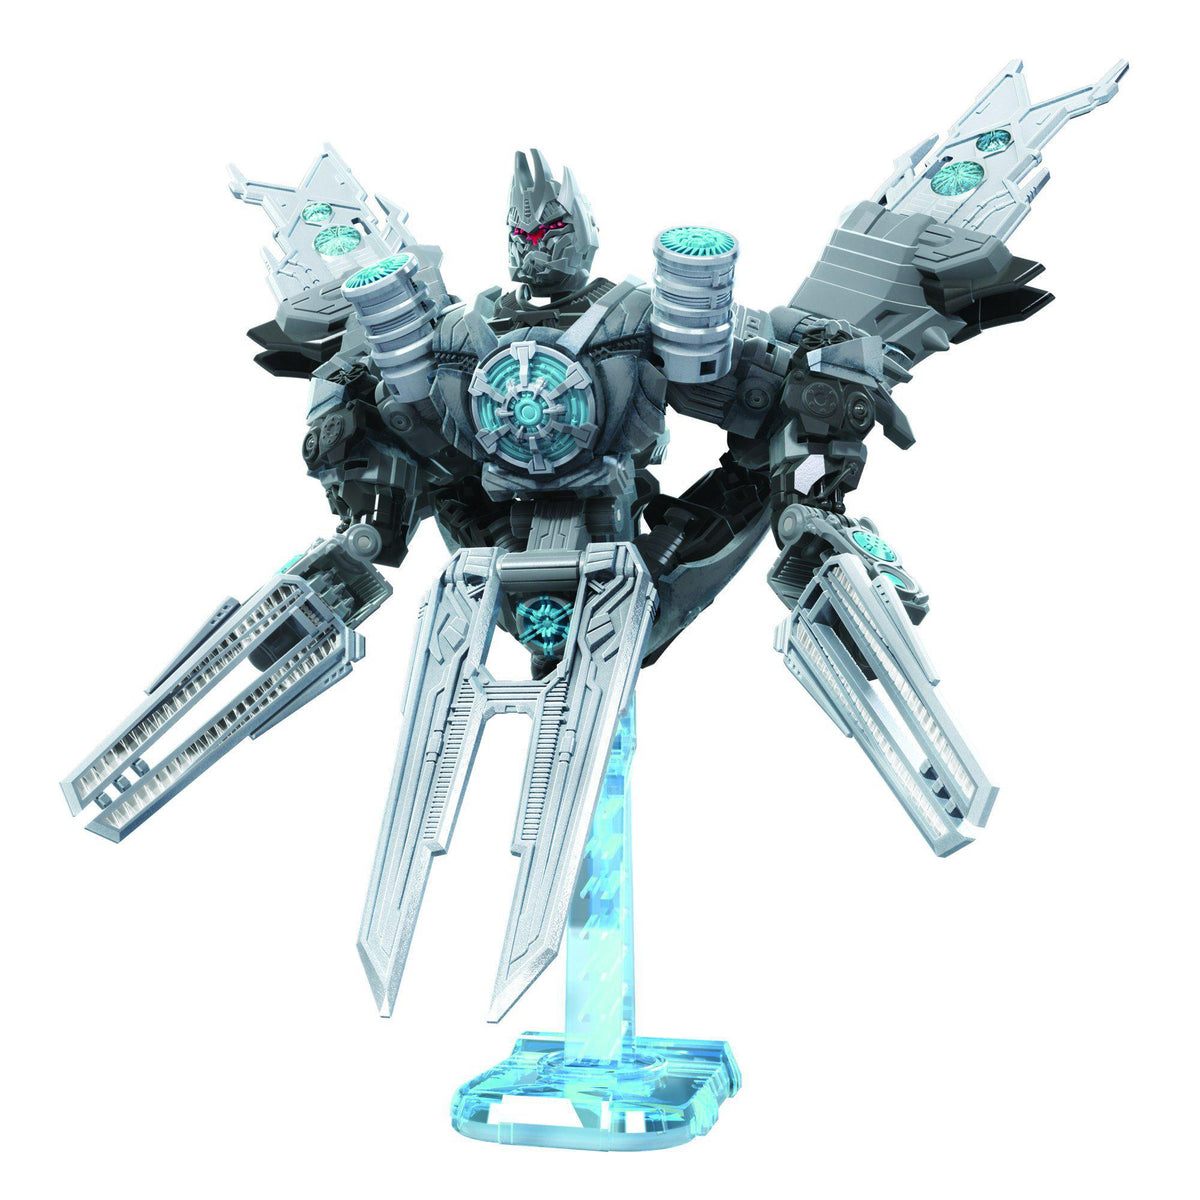 TRANSFORMERS GENERATIONS STUDIO SERIES DELUXE - REVENGE OF THE FALLEN SOUNDWAVE ACTION FIGURE